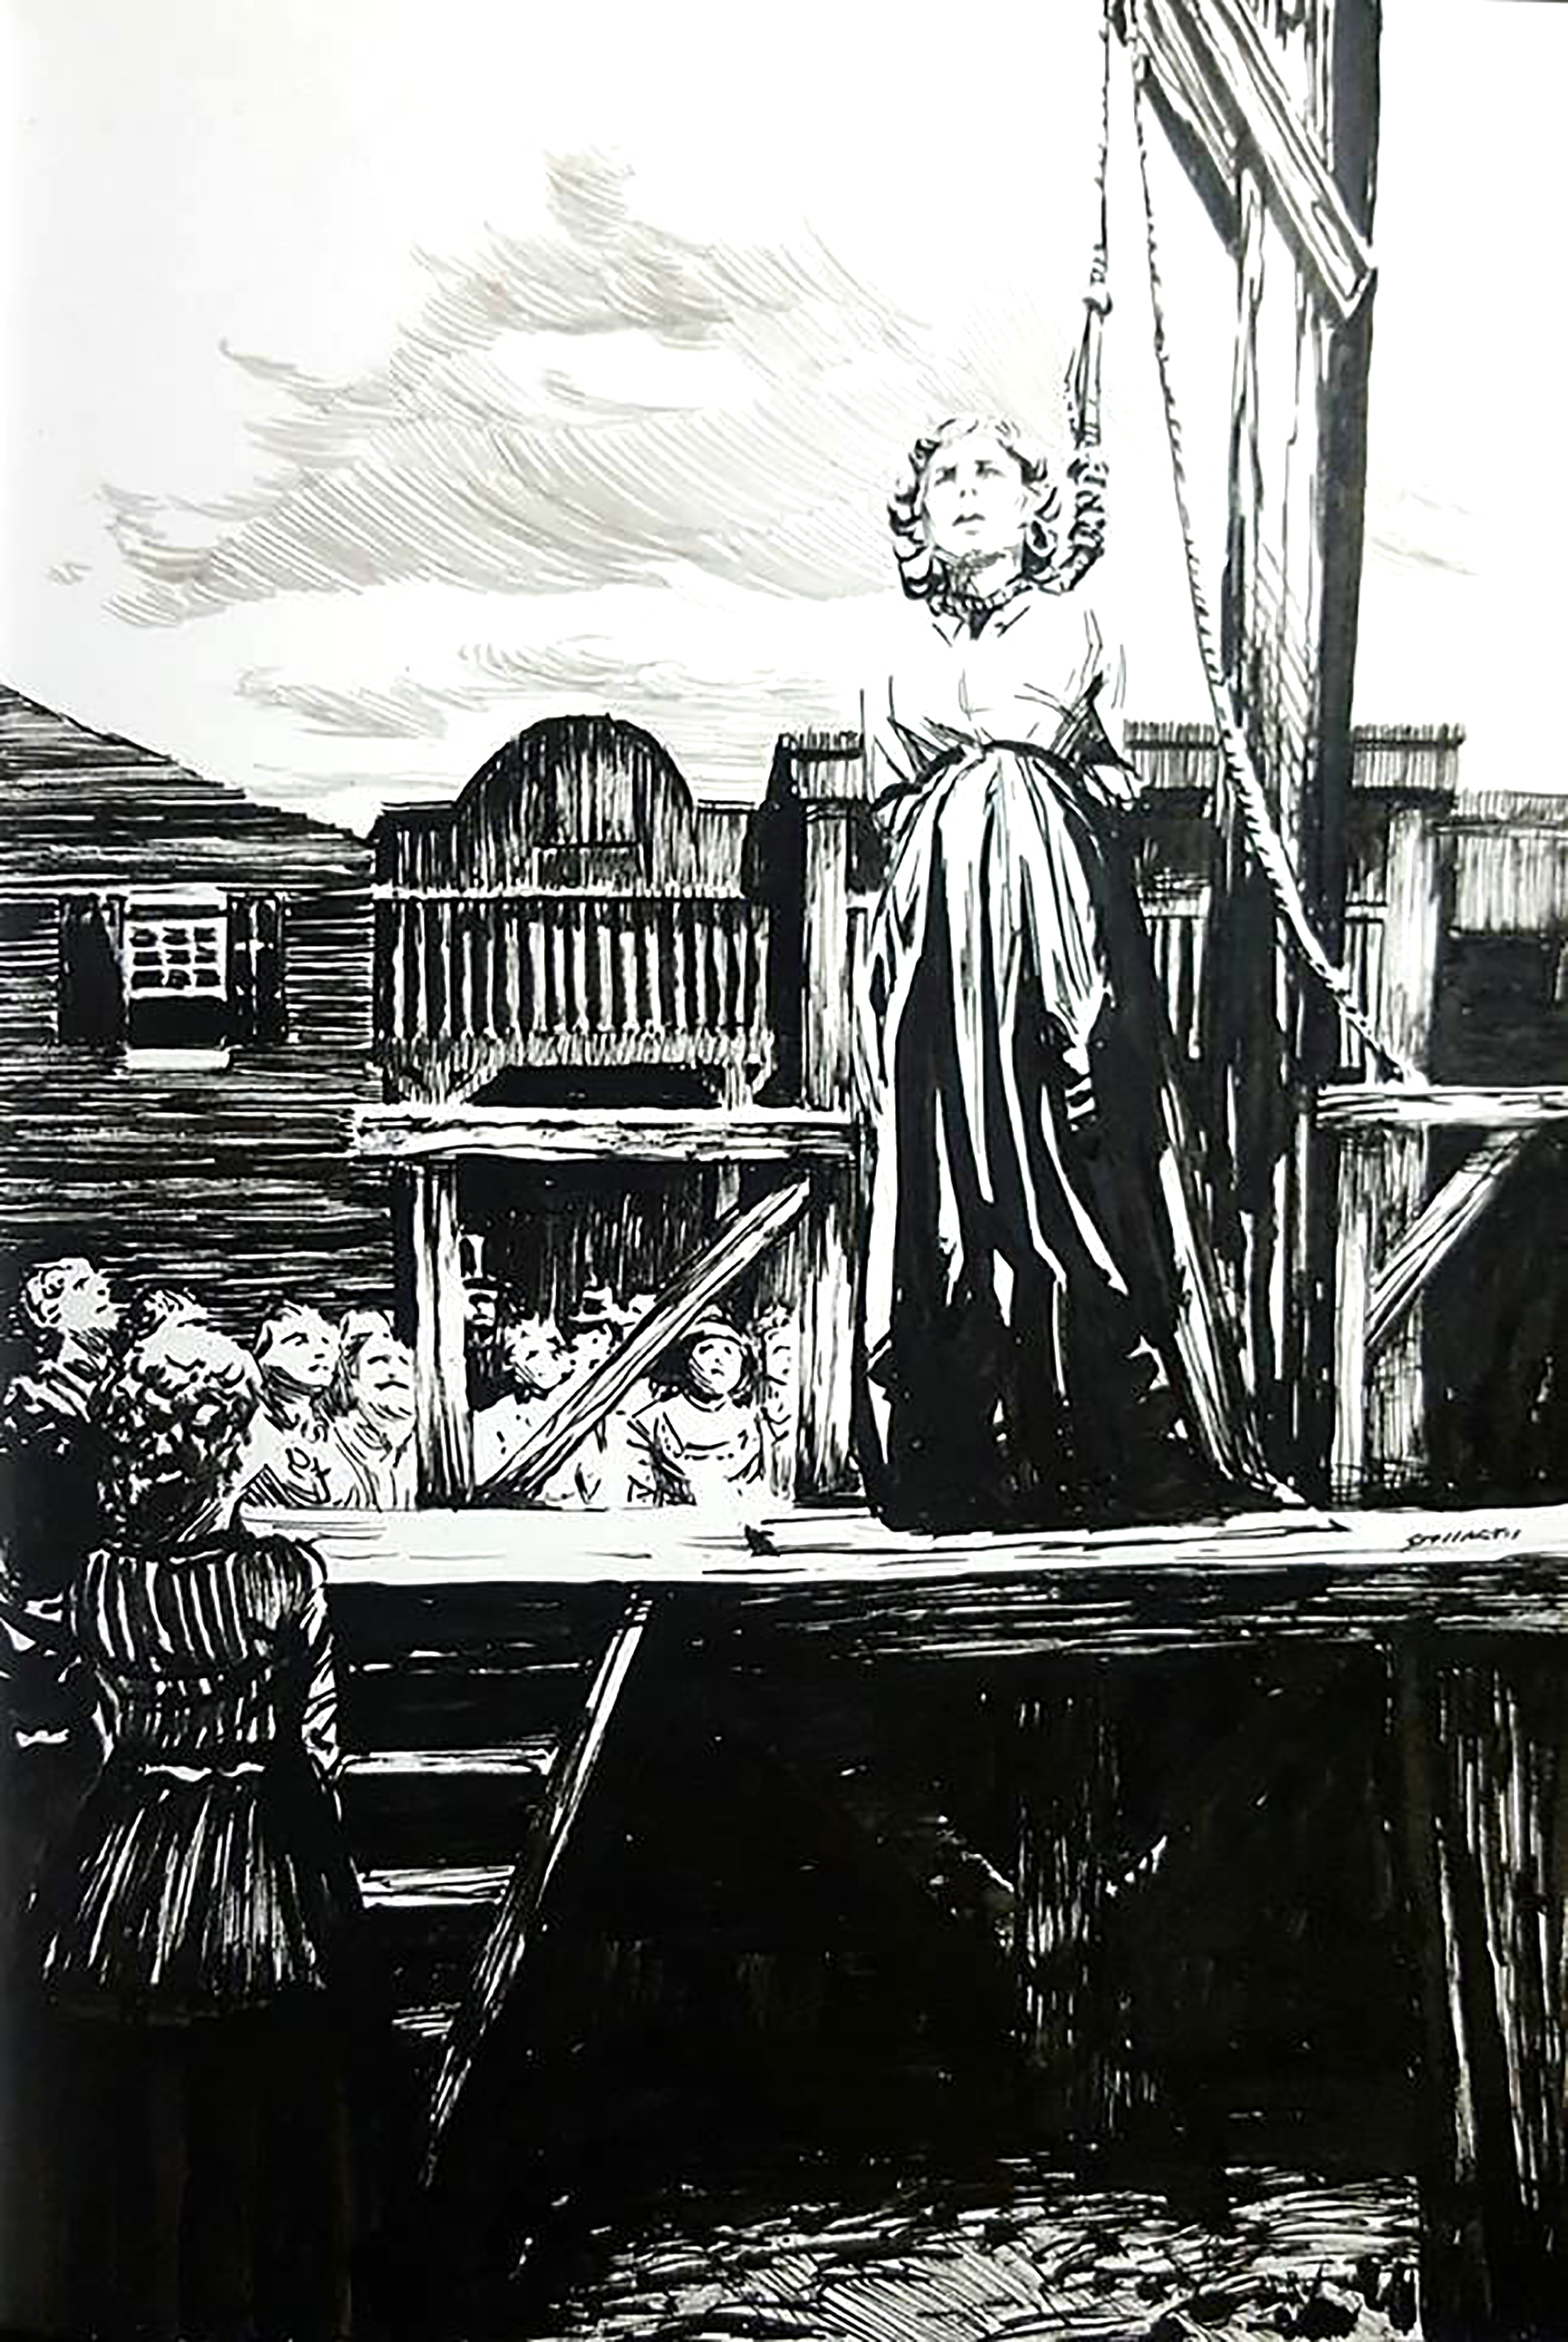 Gallows $400 Ink drawing on 17x28cm paper